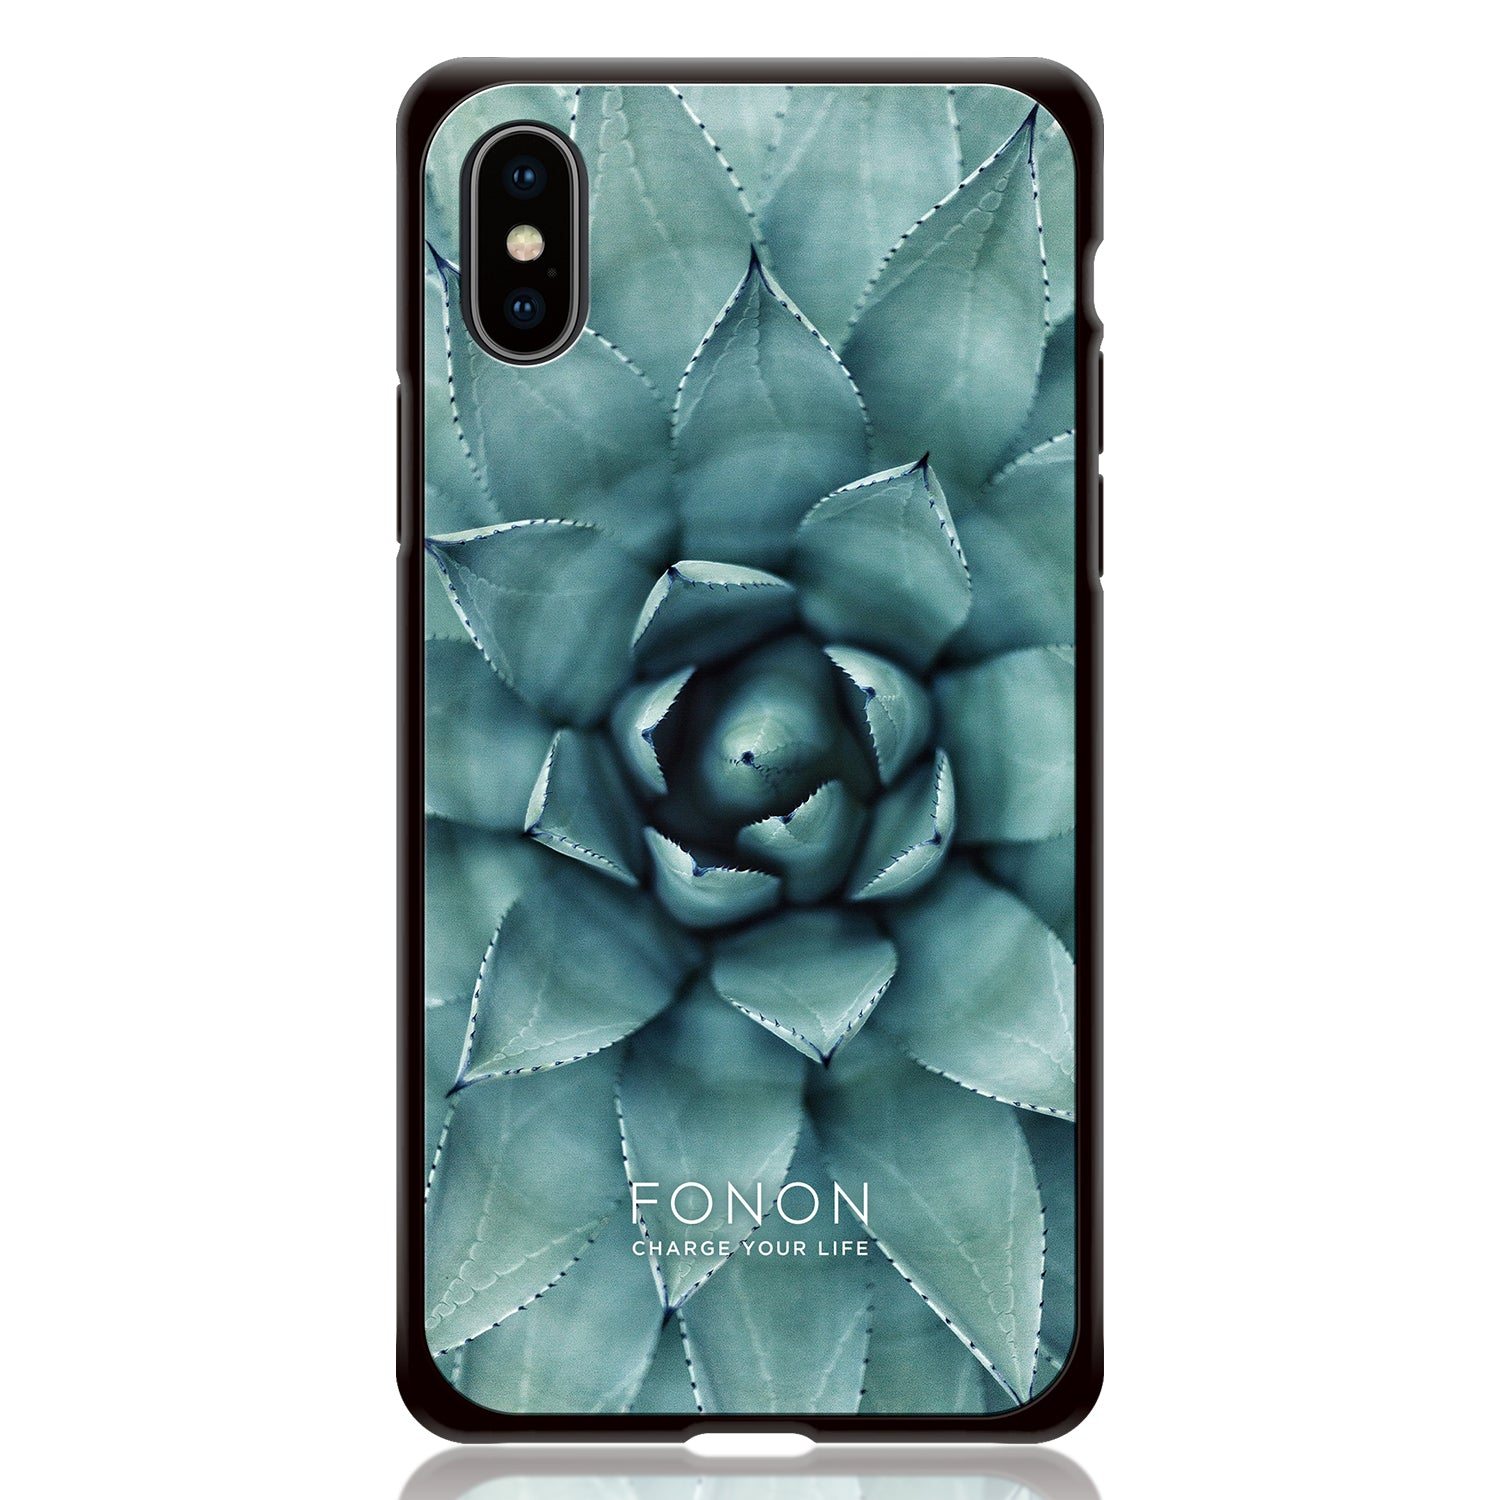 DAMPER GLASS iPhone CASE - BOTANICAL GARDEN - Cactus